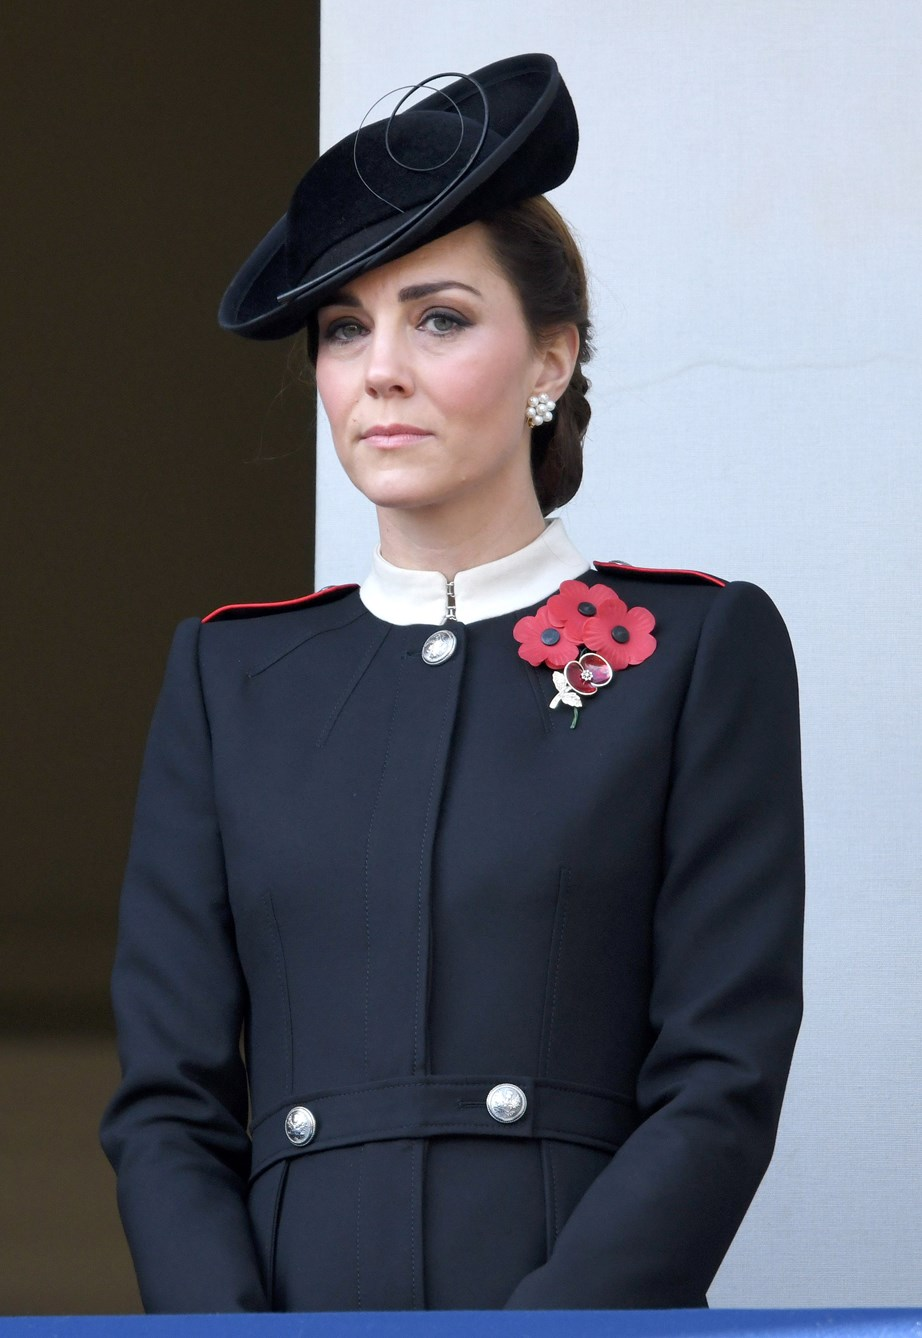 Duchess Catherine watched the service sombrely.